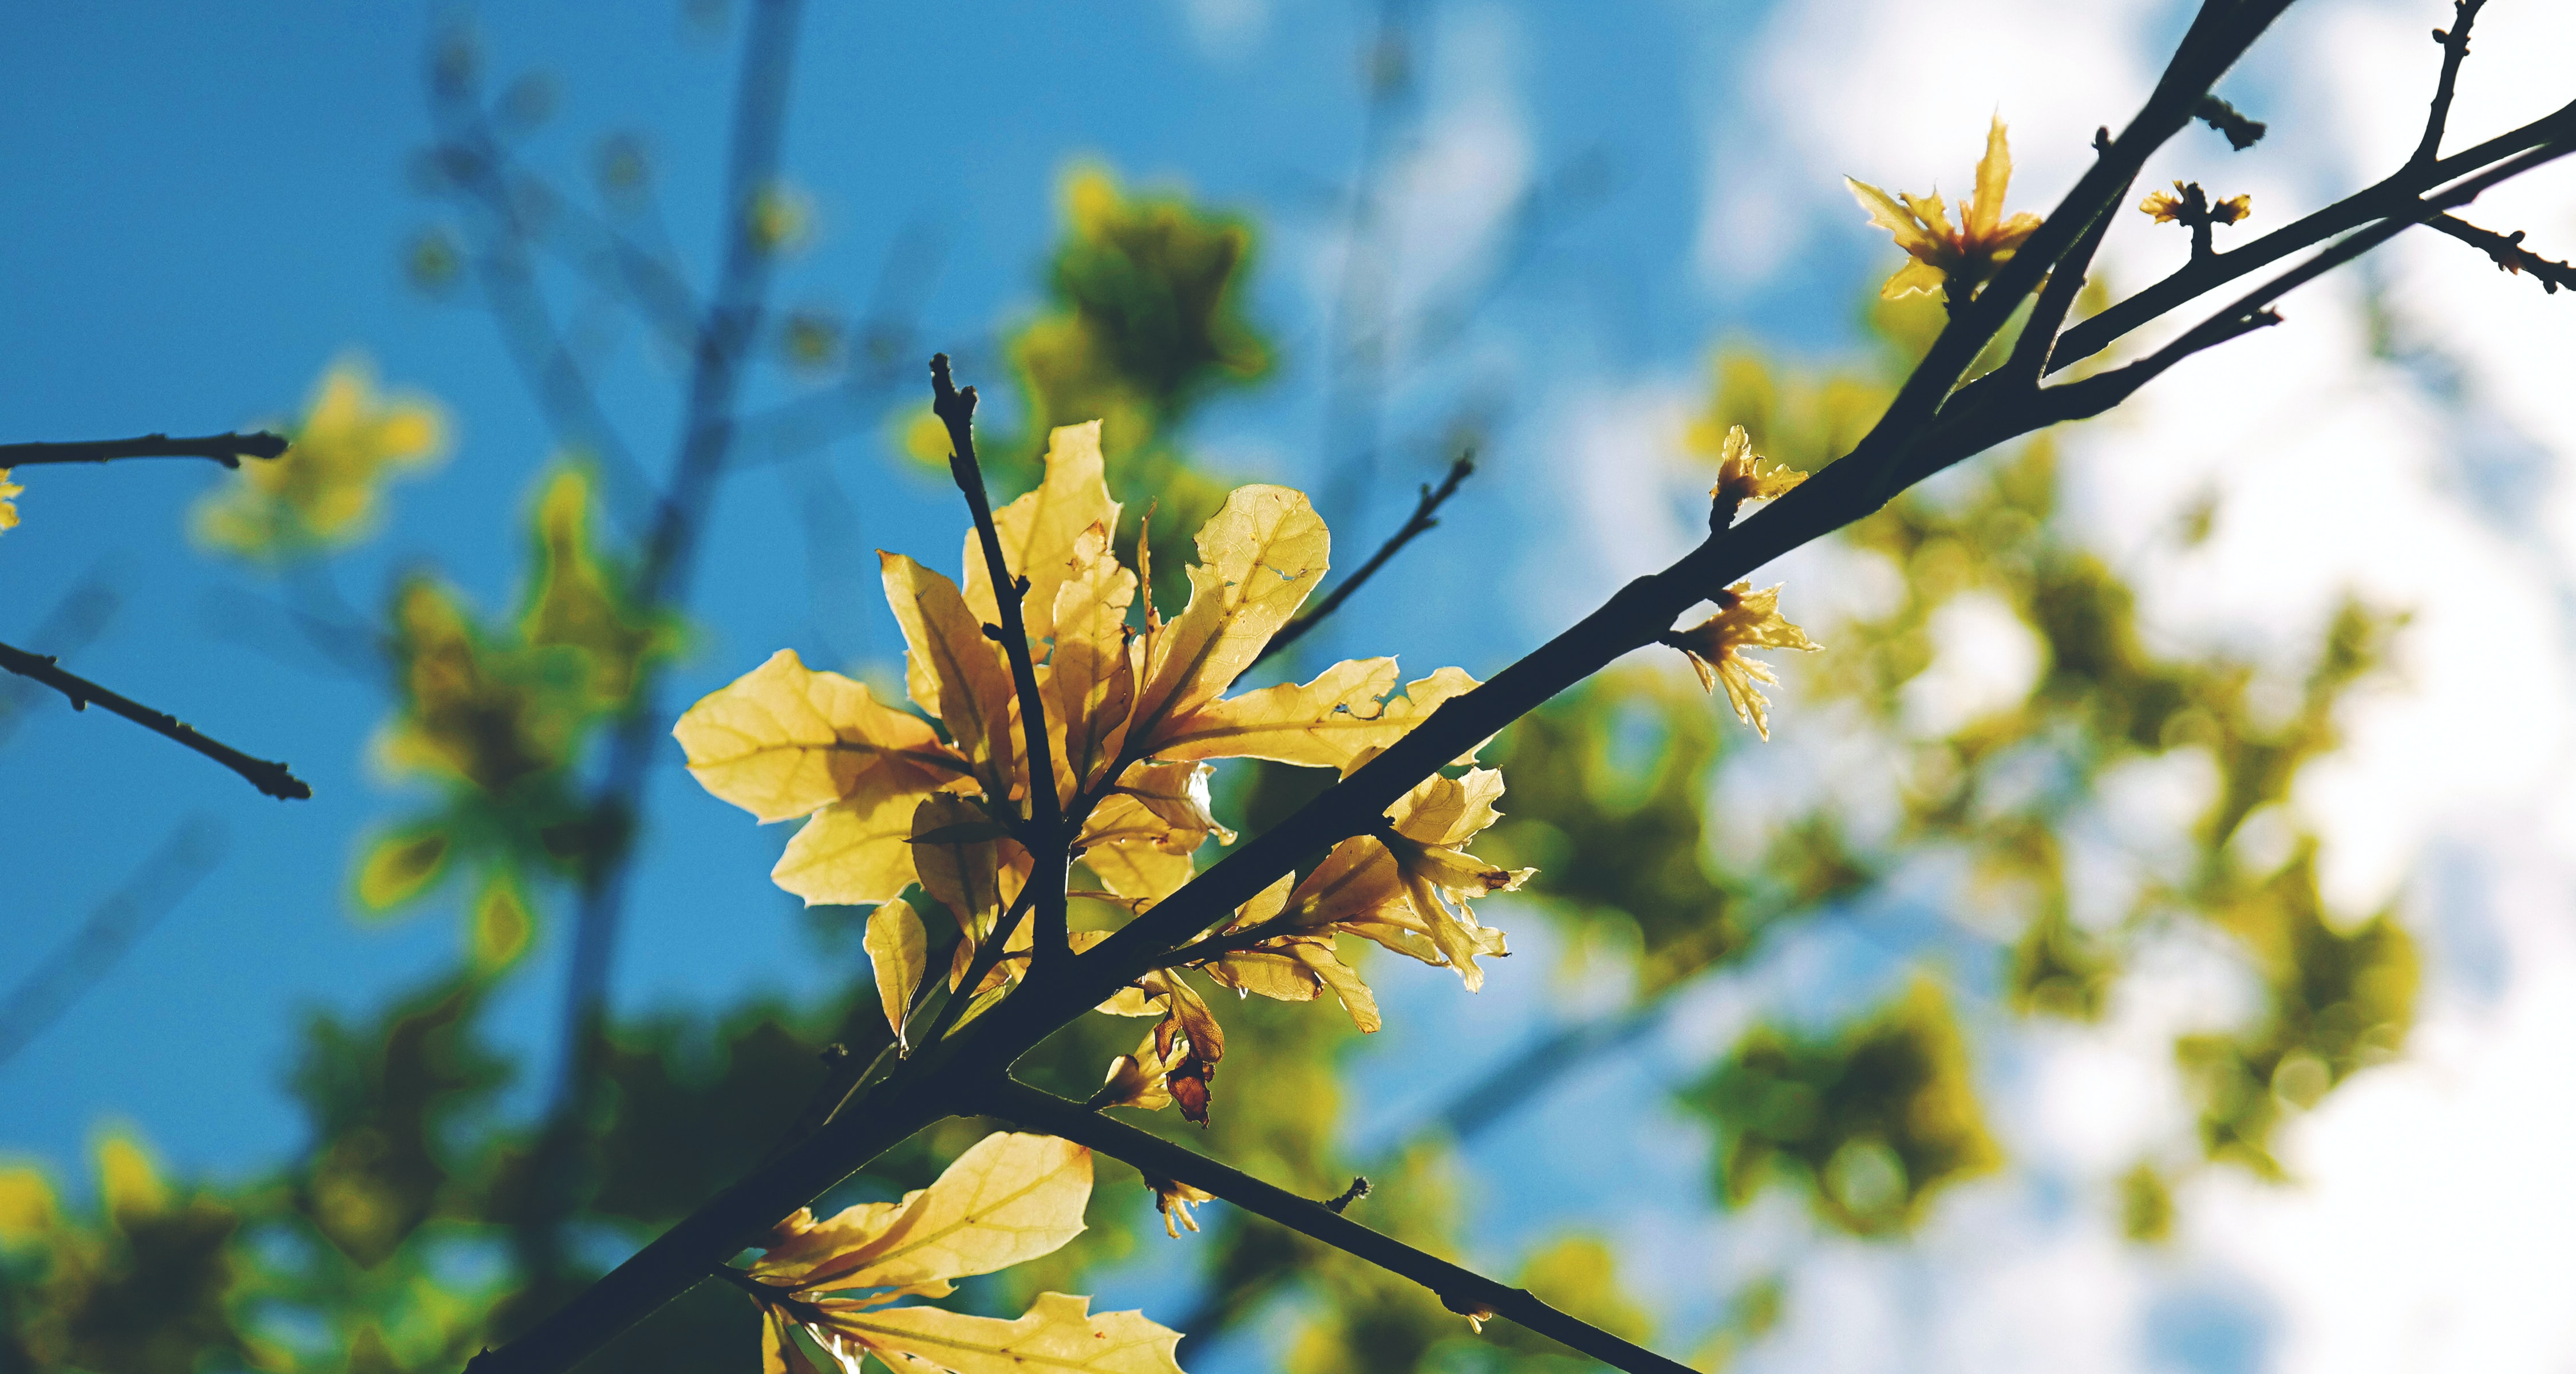 Macro tree branch with yellow flower and green leaf with blue sky in Spring